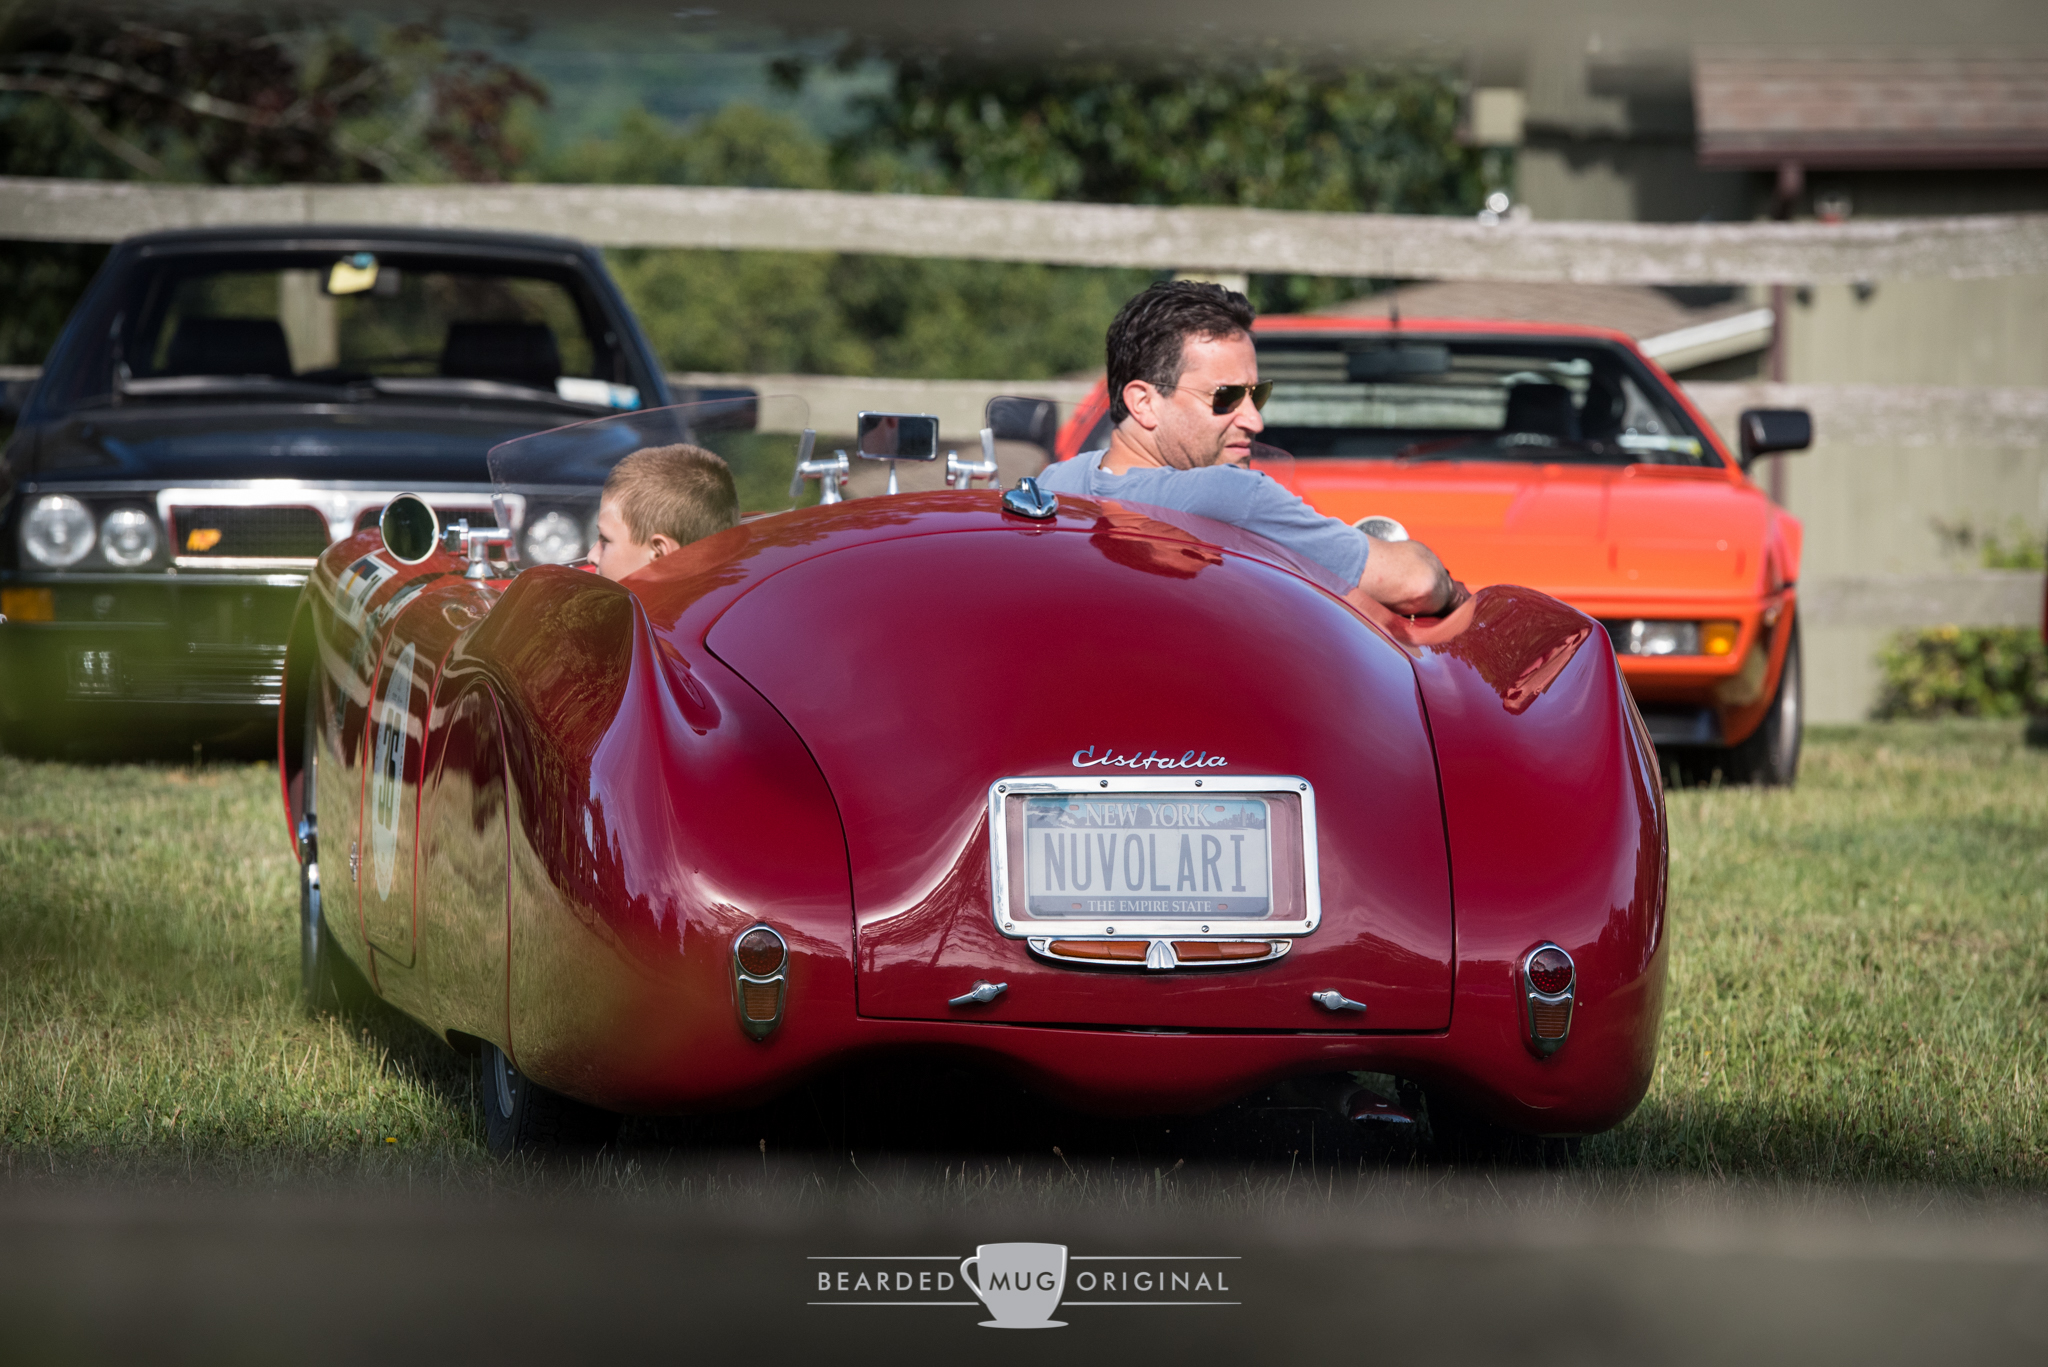 """A 1947 Cisitalia 202 SMM """"Nuvolari Spider"""" is a legend amongst legends, as indicated by the BMW M1 and Lancia Delta Integrale Evoluzione parked across the field."""